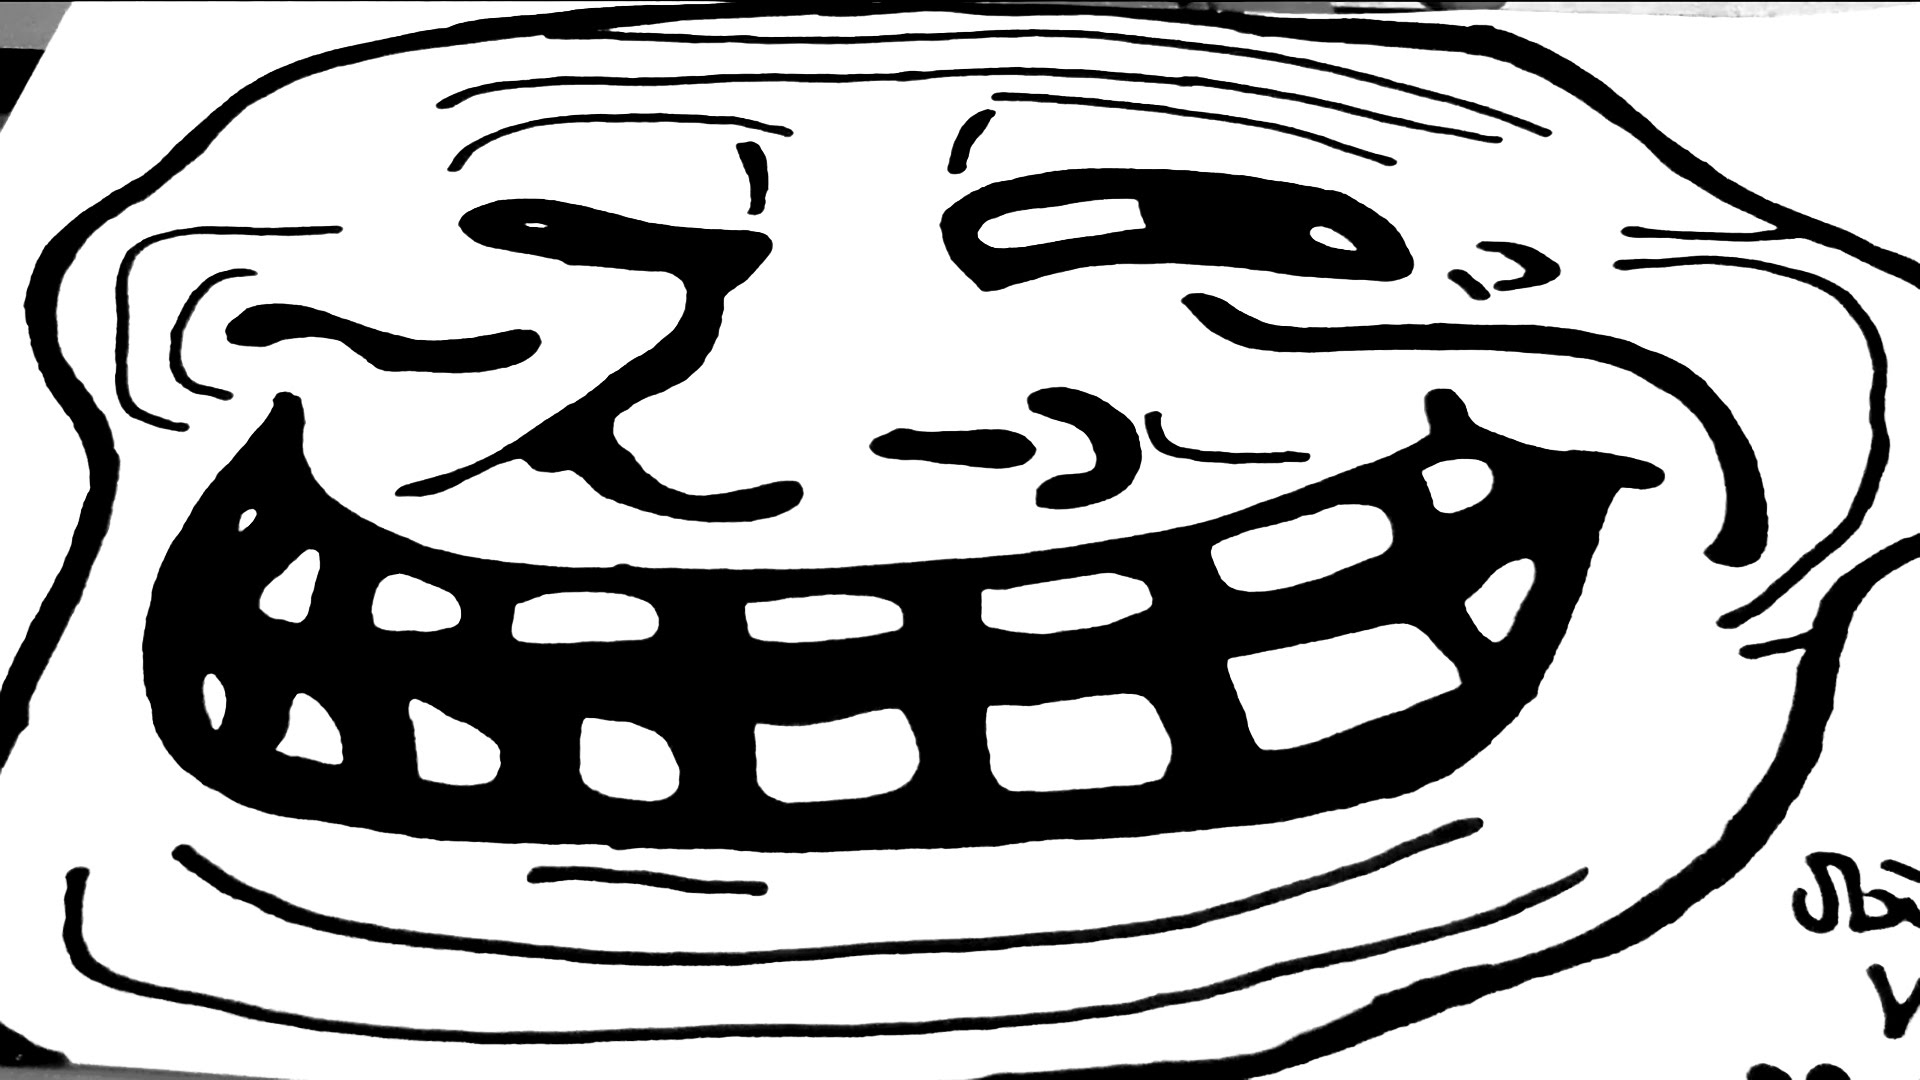 1920x1080 How To Draw Memes Meme Faces Step By Step Easy A Troll Face